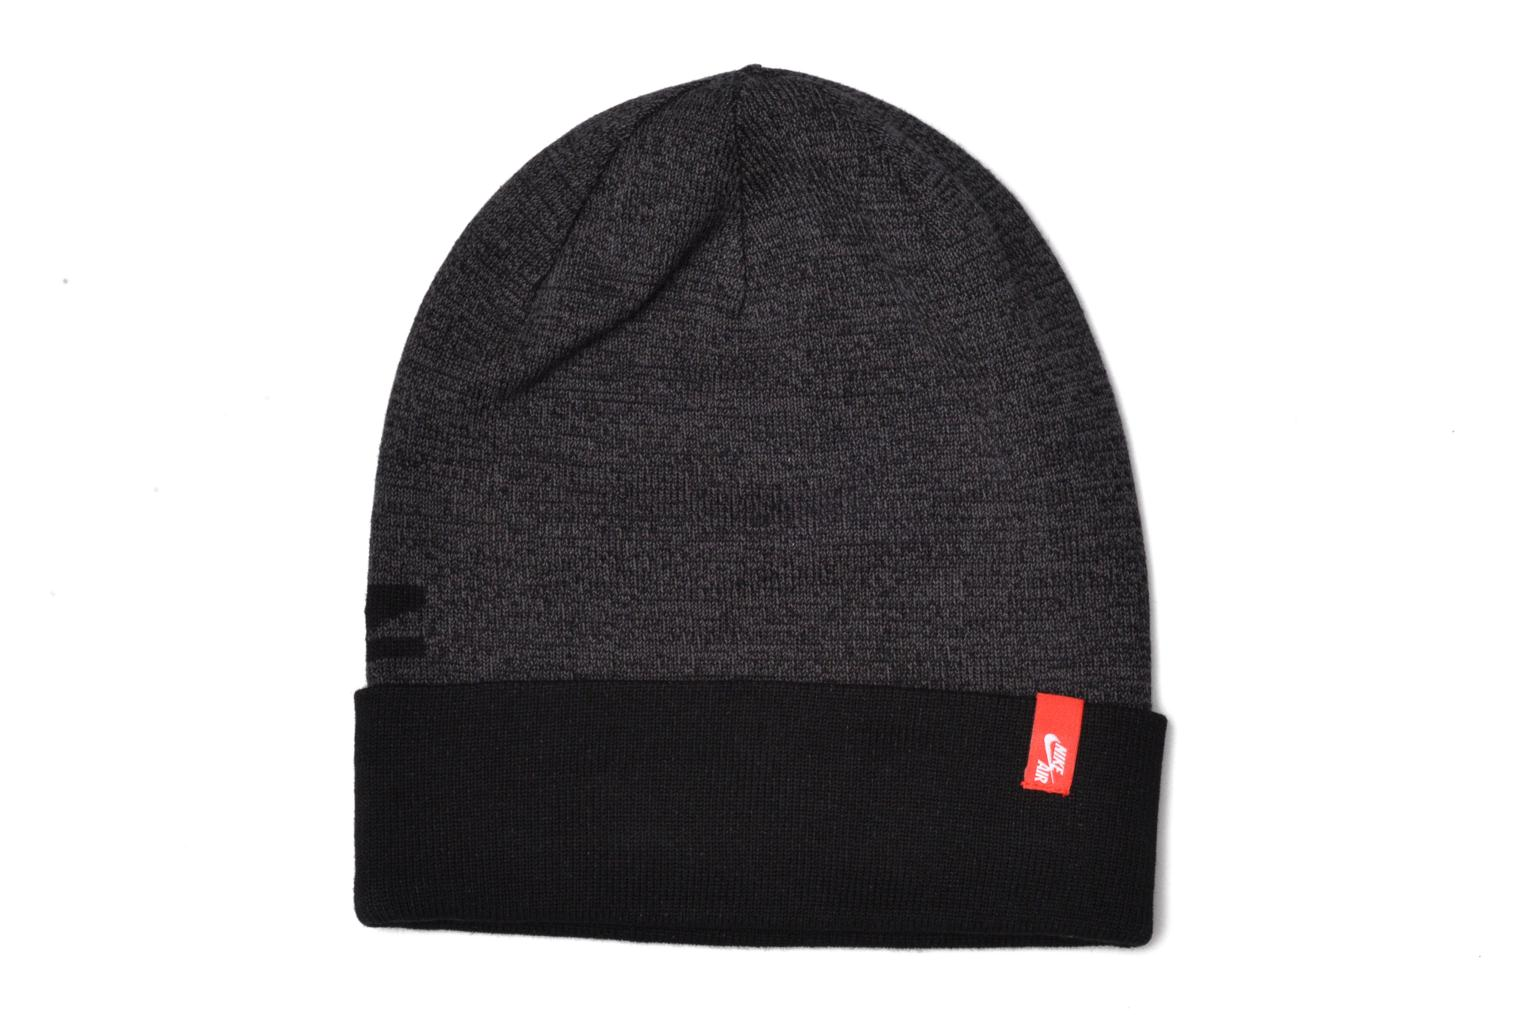 Air 92 Beanie Bonnet Charcoal heather